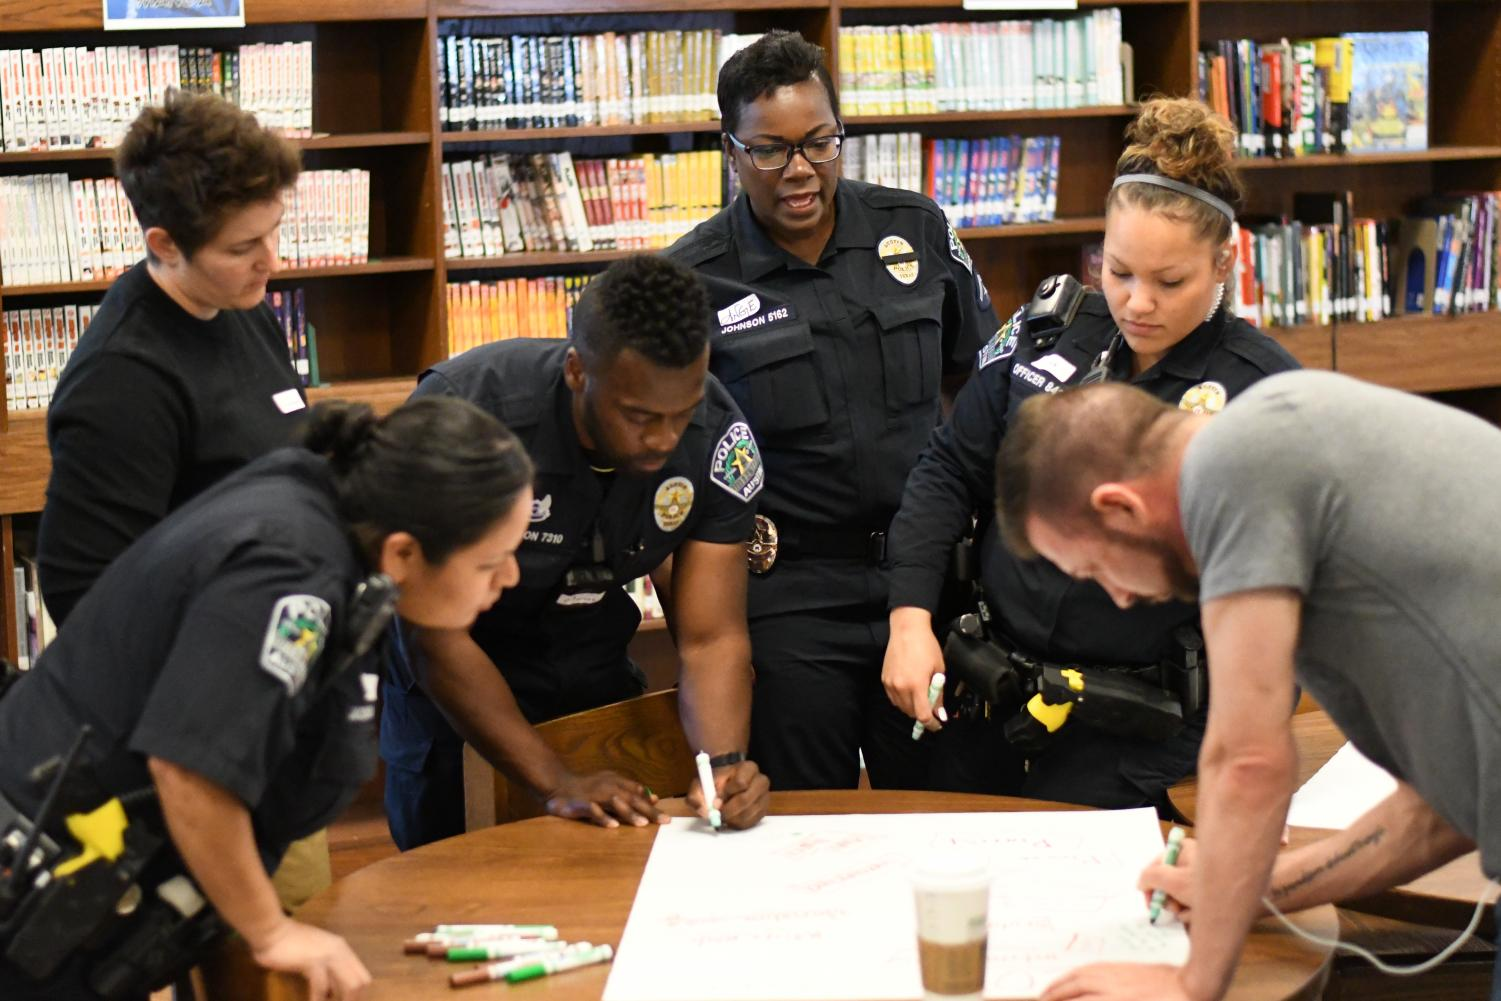 Austin Police Department officers work together to respond to a poster activity. The roundtable participants wrote down their perceptions of teenagers and police officers and then came together to discuss those perceptions. Photo by Bella Russo.